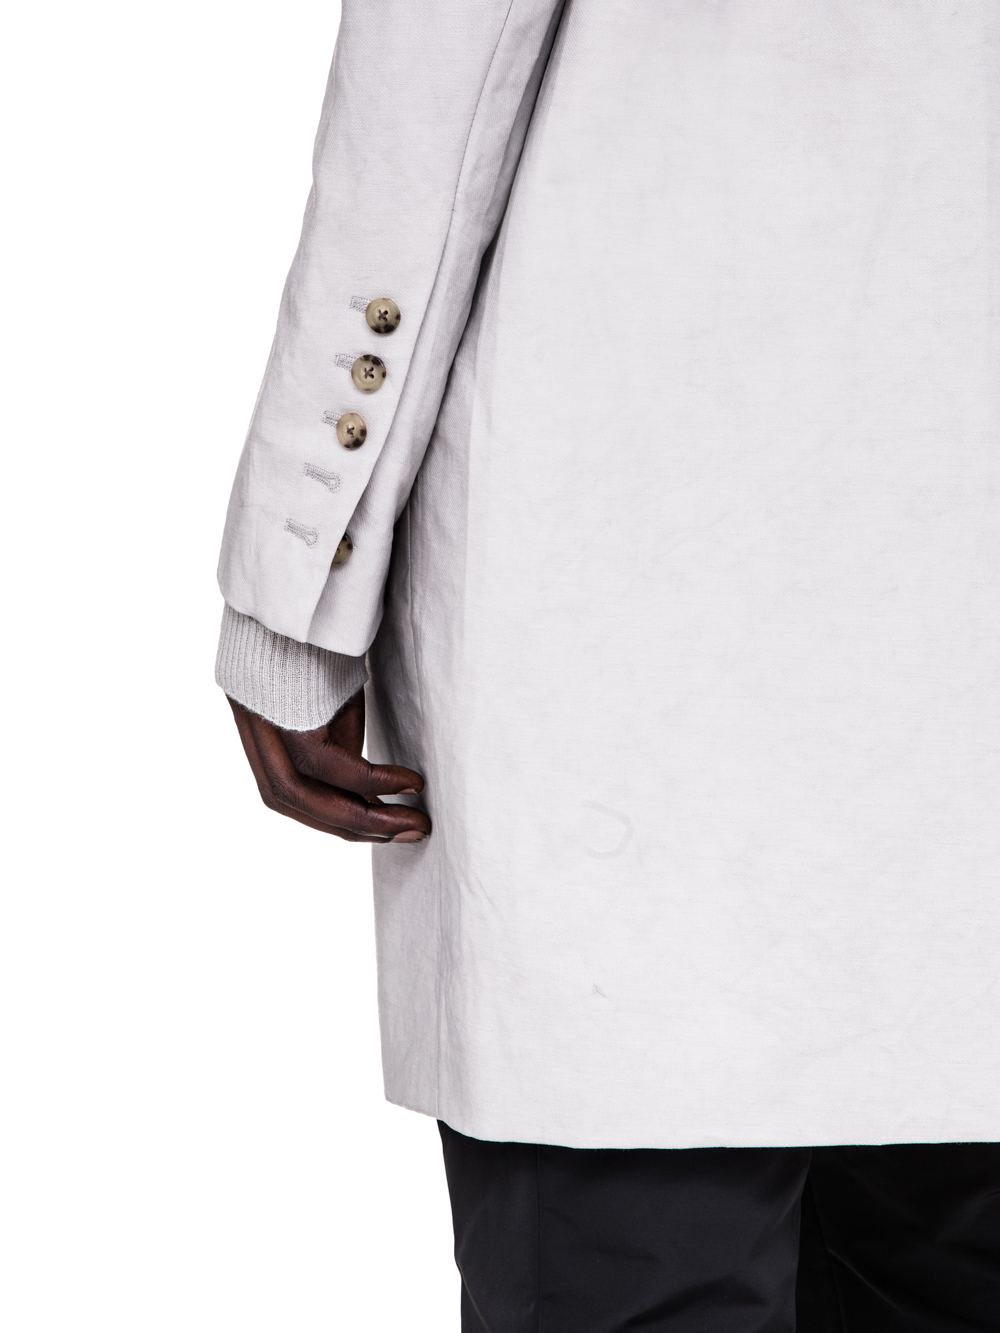 RICK OWENS SS19 BABEL MOREAU PEACOAT IN OYSTER LIGHT GREY